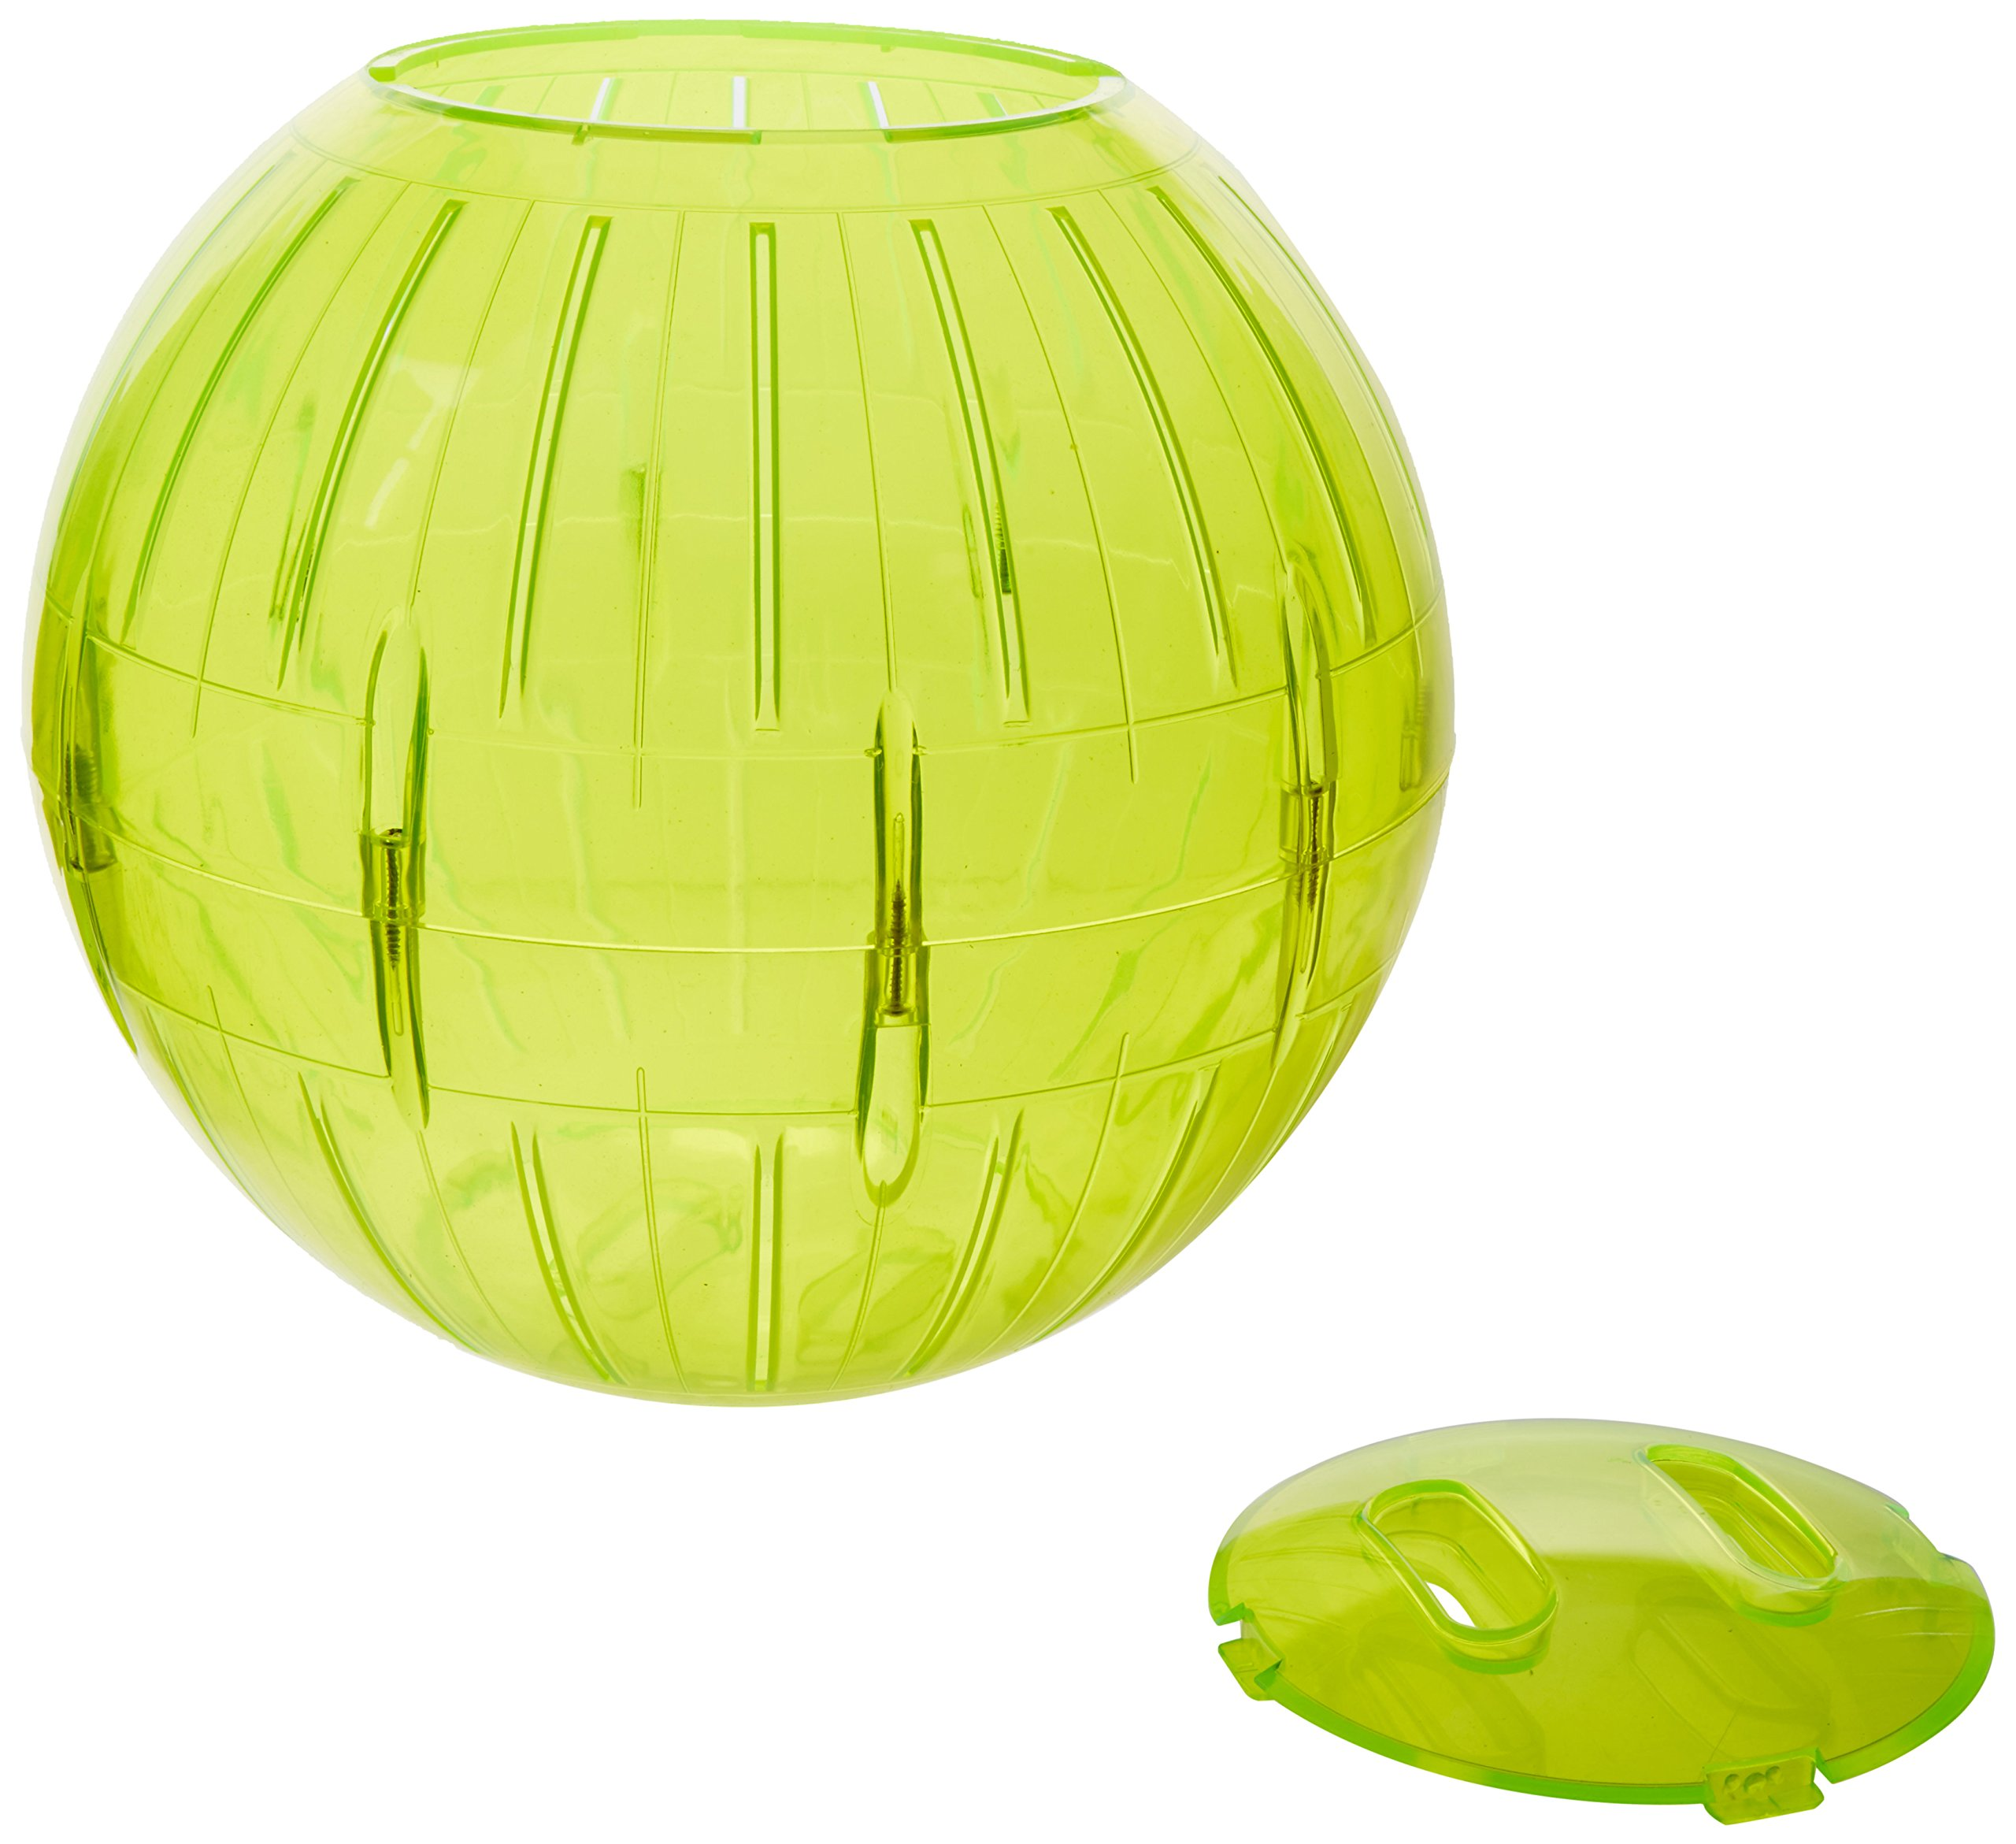 Lee's Kritter Krawler Giant Exercise Ball, 12-1/2-Inch, Colored by Lee's (Image #2)